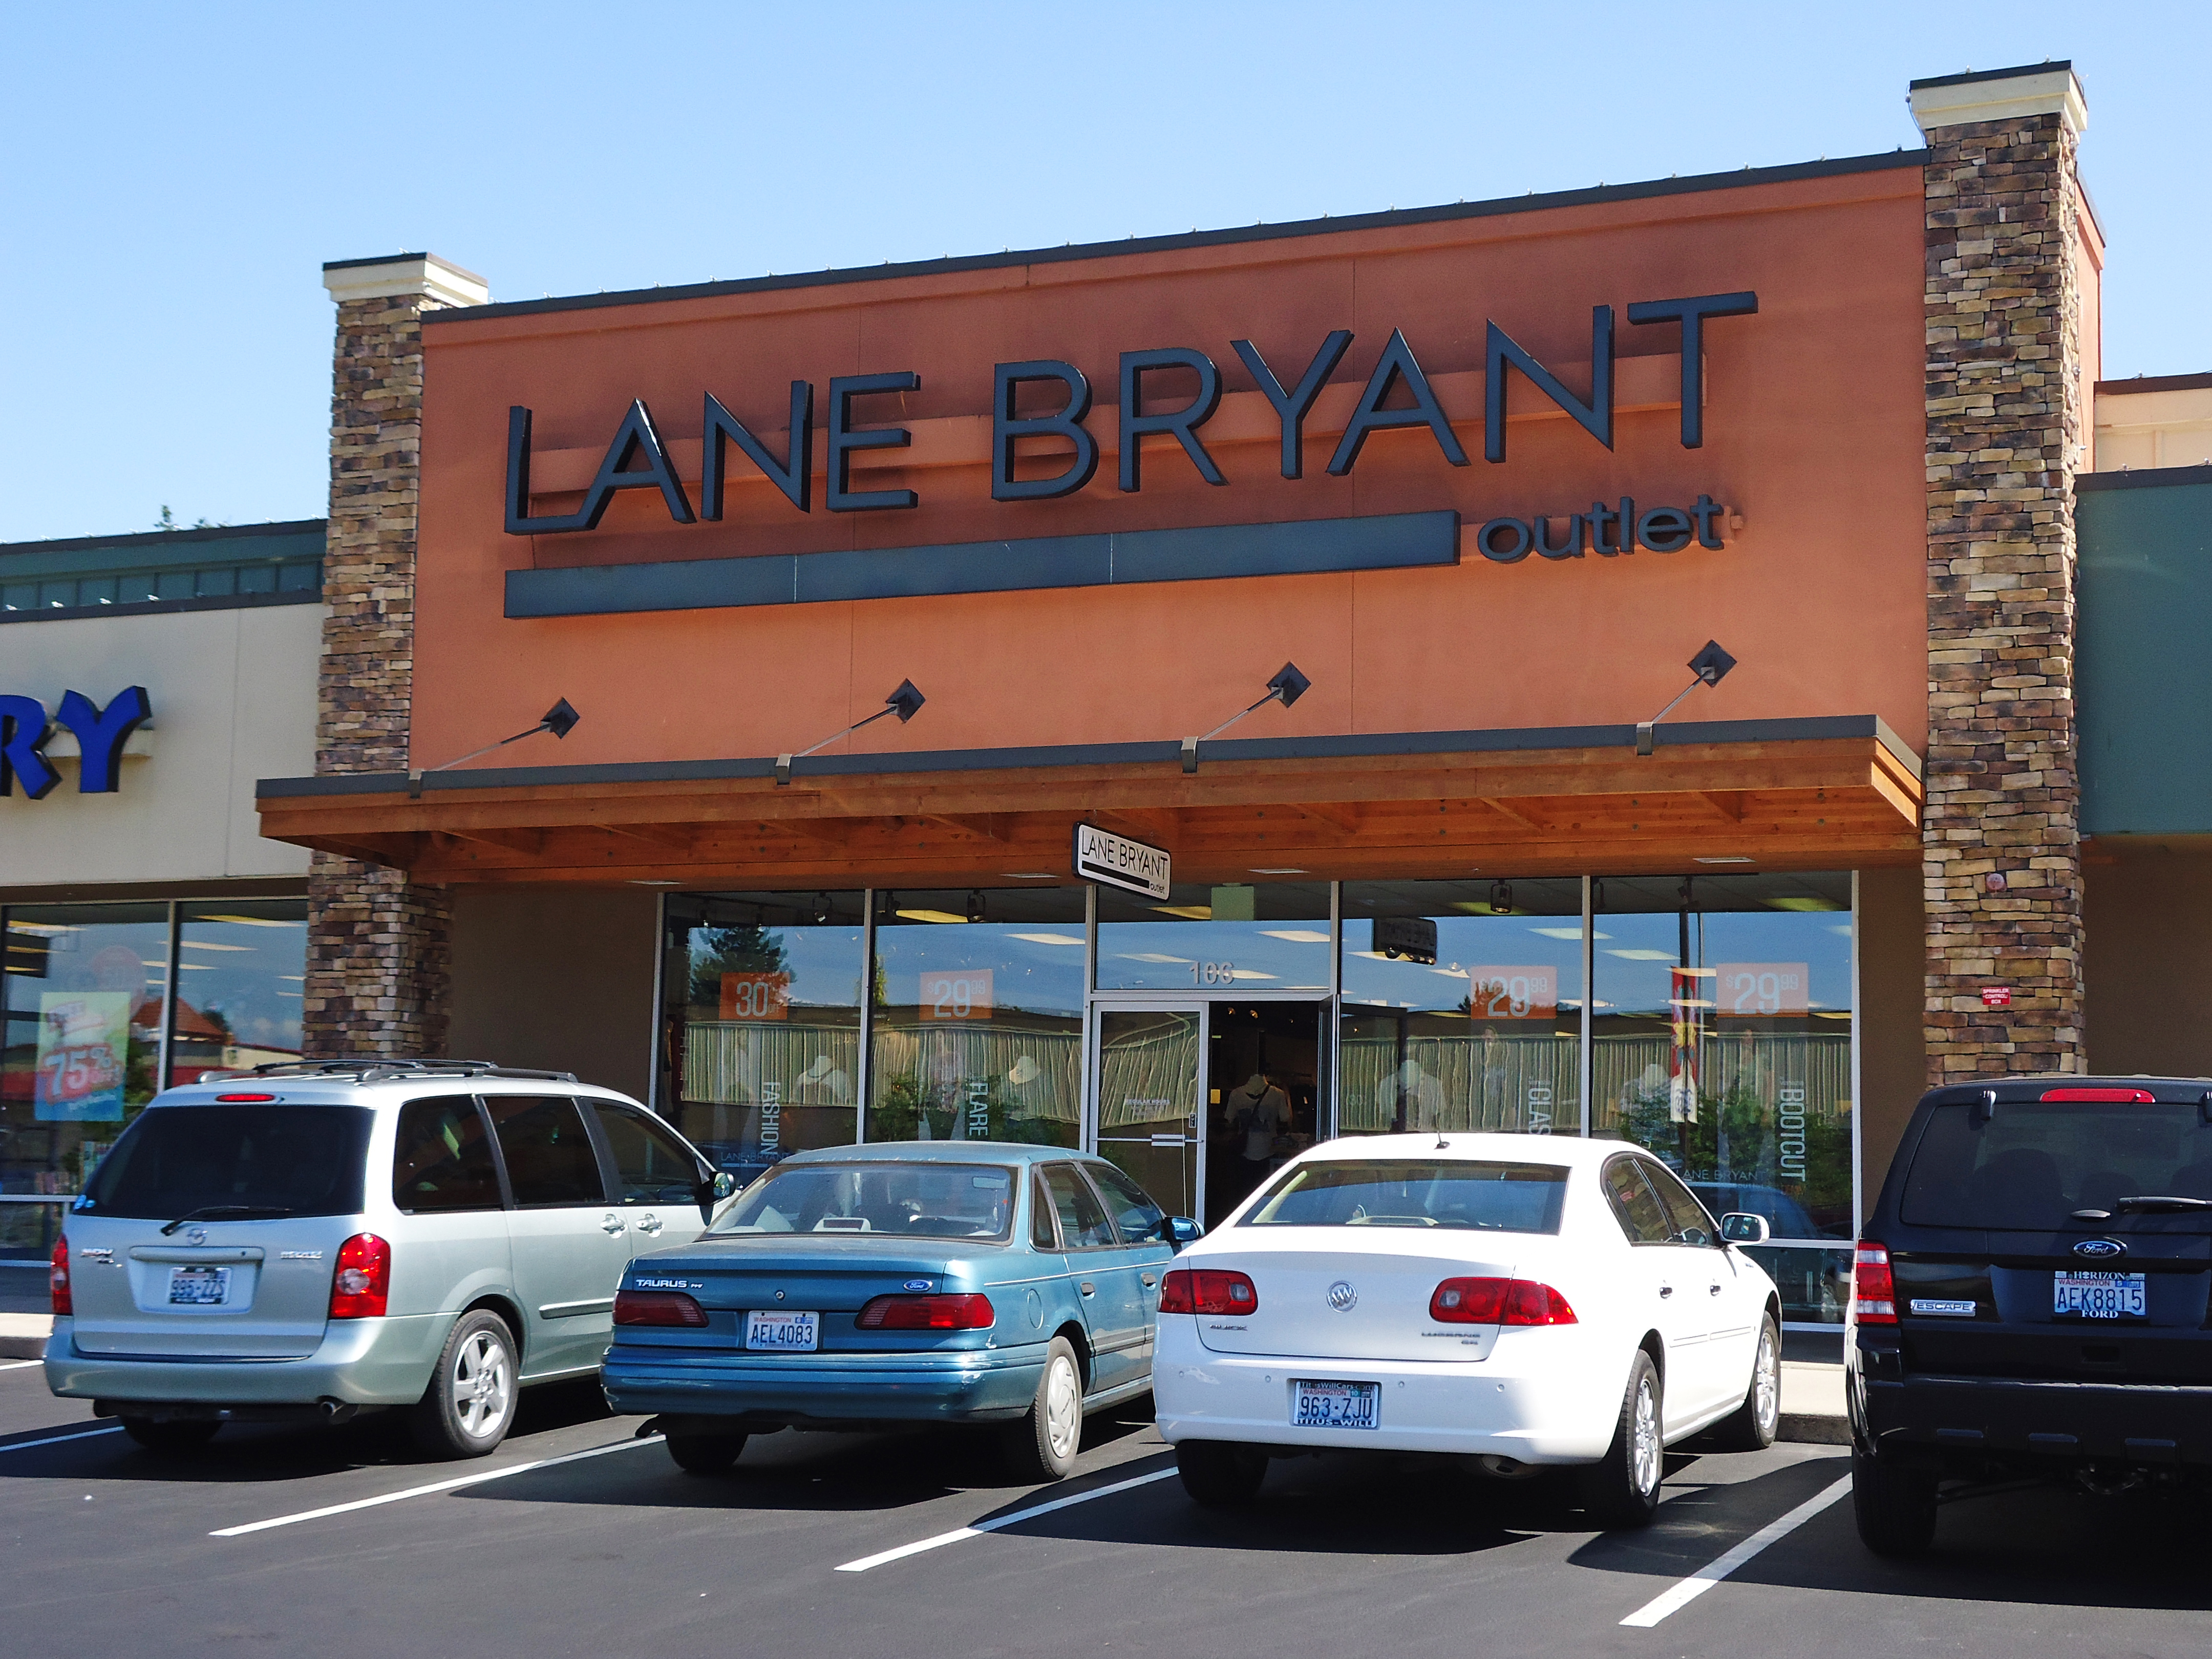 Lane Bryant is the most recognized name in plus-size clothing, and our emphasis on fashion and fit – not merely size – makes us a style leader. a Lane Bryant exclusive, Cacique plus size intimates are famous for the fit solutions and fashion styling they offer in bras, panties, sleepwear and more.